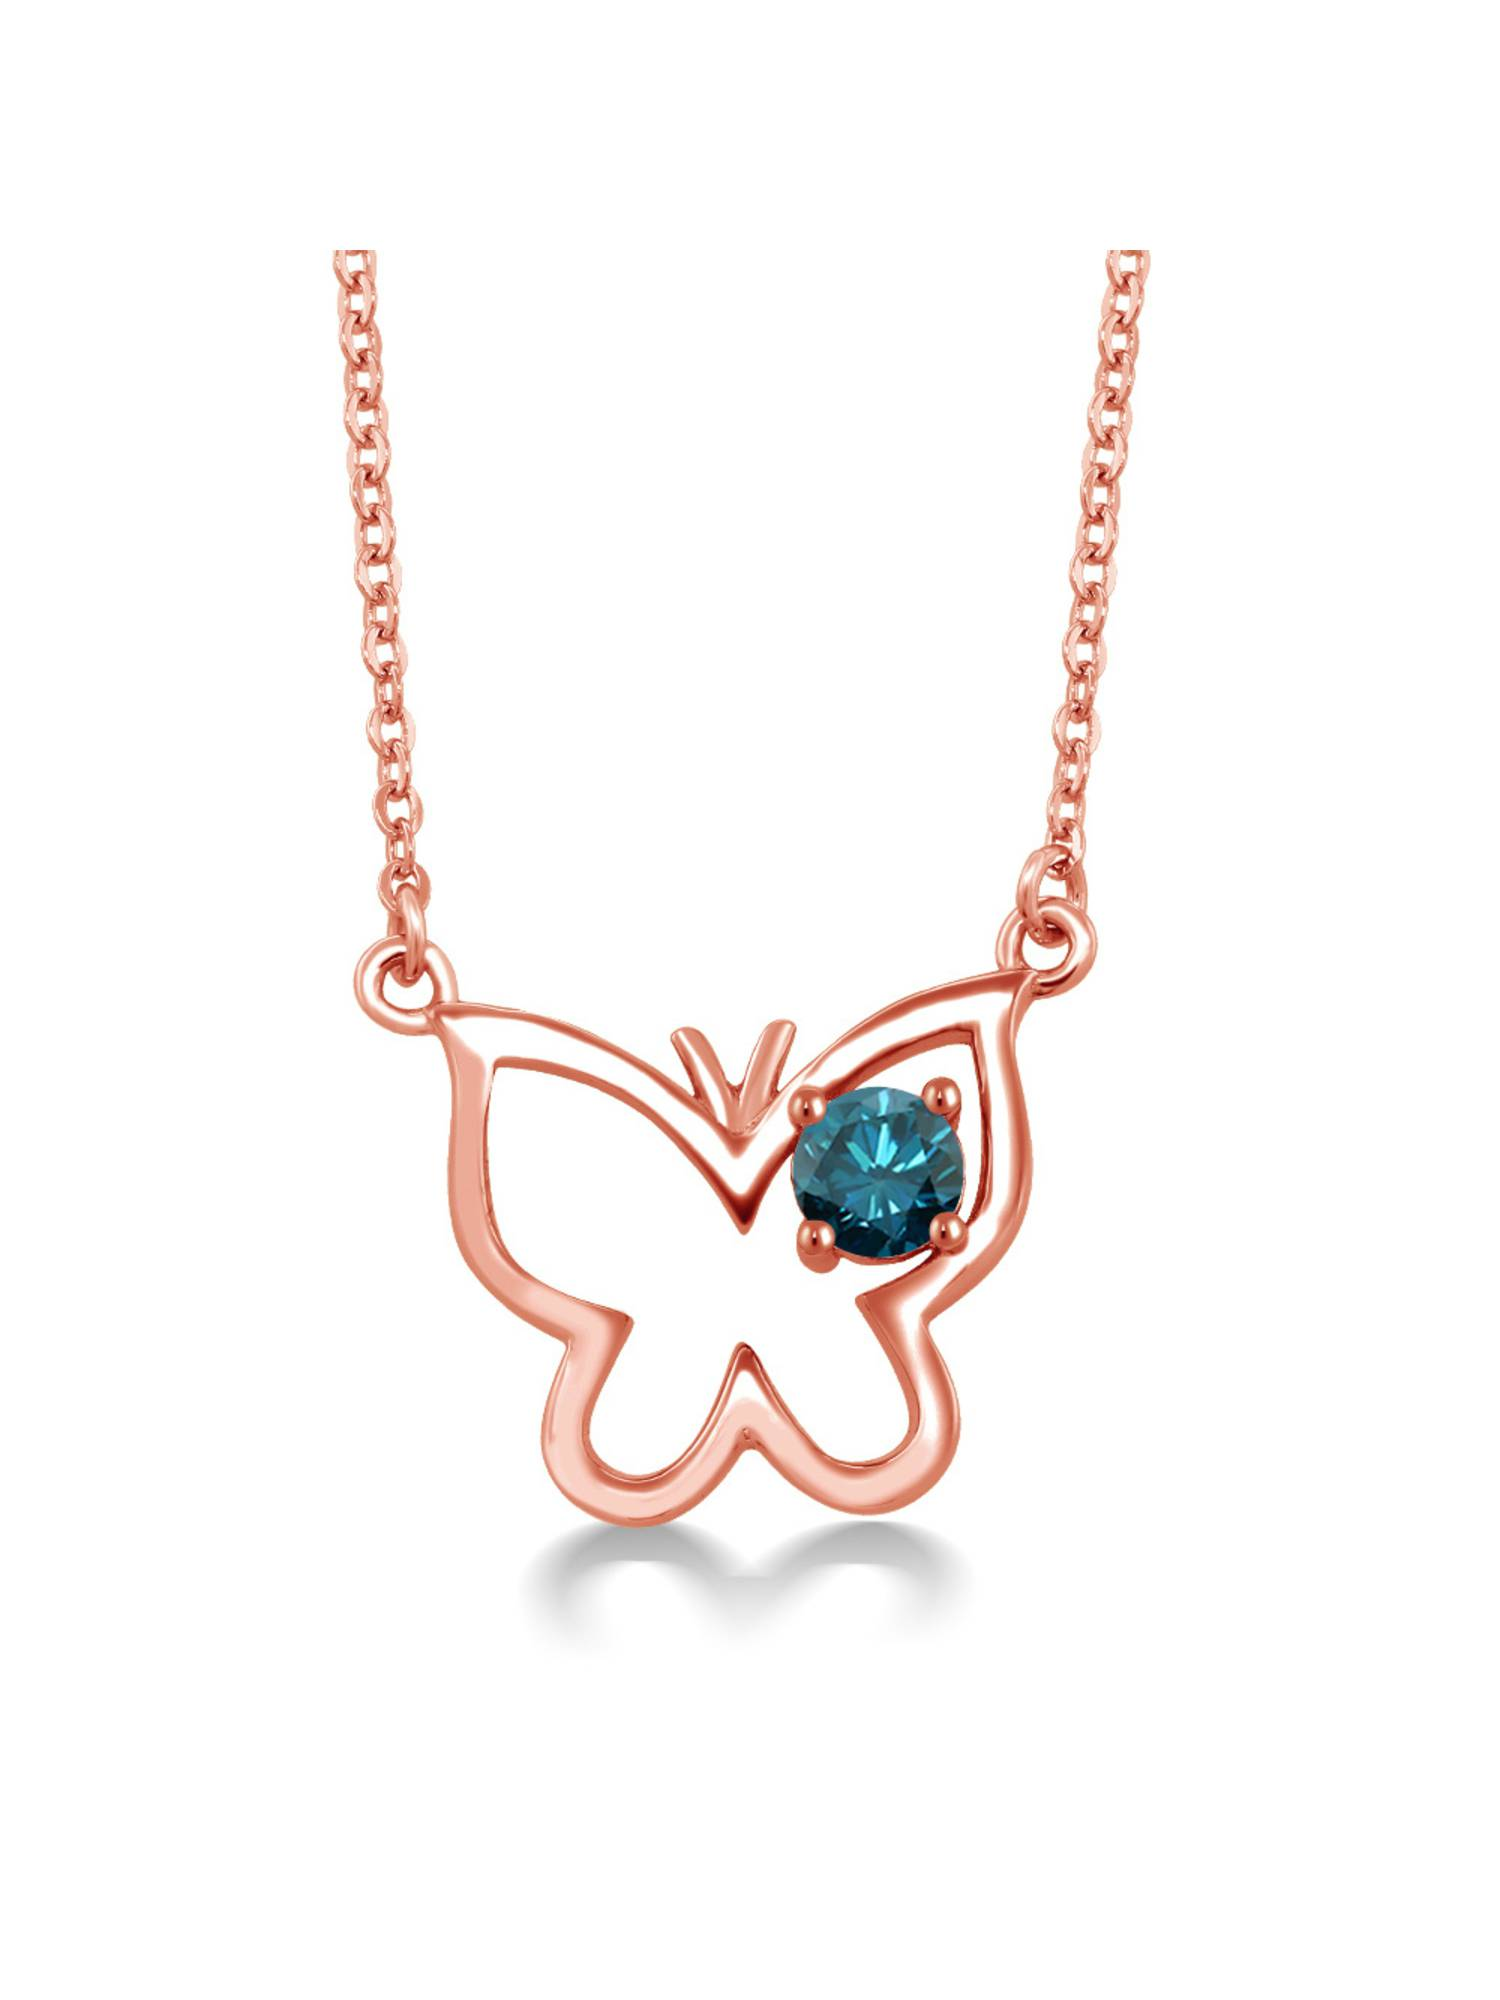 0.27 Ct Round Blue Diamond 18K Rose Gold Plated Silver Necklace by